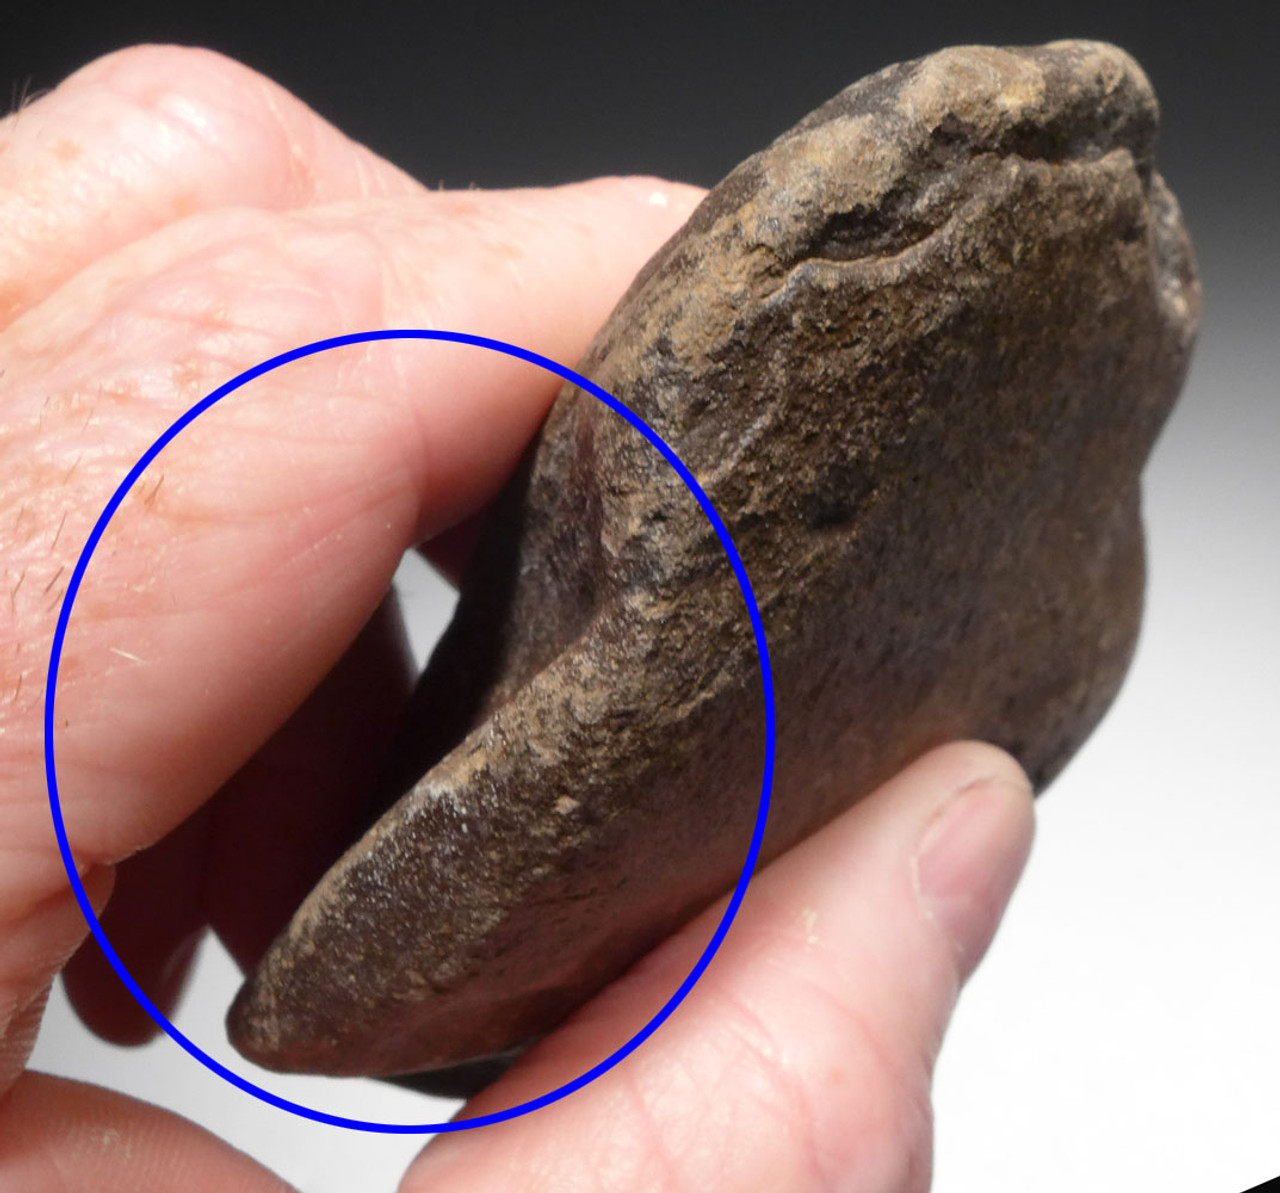 EARLY MAN AMYGDALOID HAND AXE OF THE ACHEULEAN TRADITION FROM LOWER PALEOLITHIC AFRICA  *ACH421